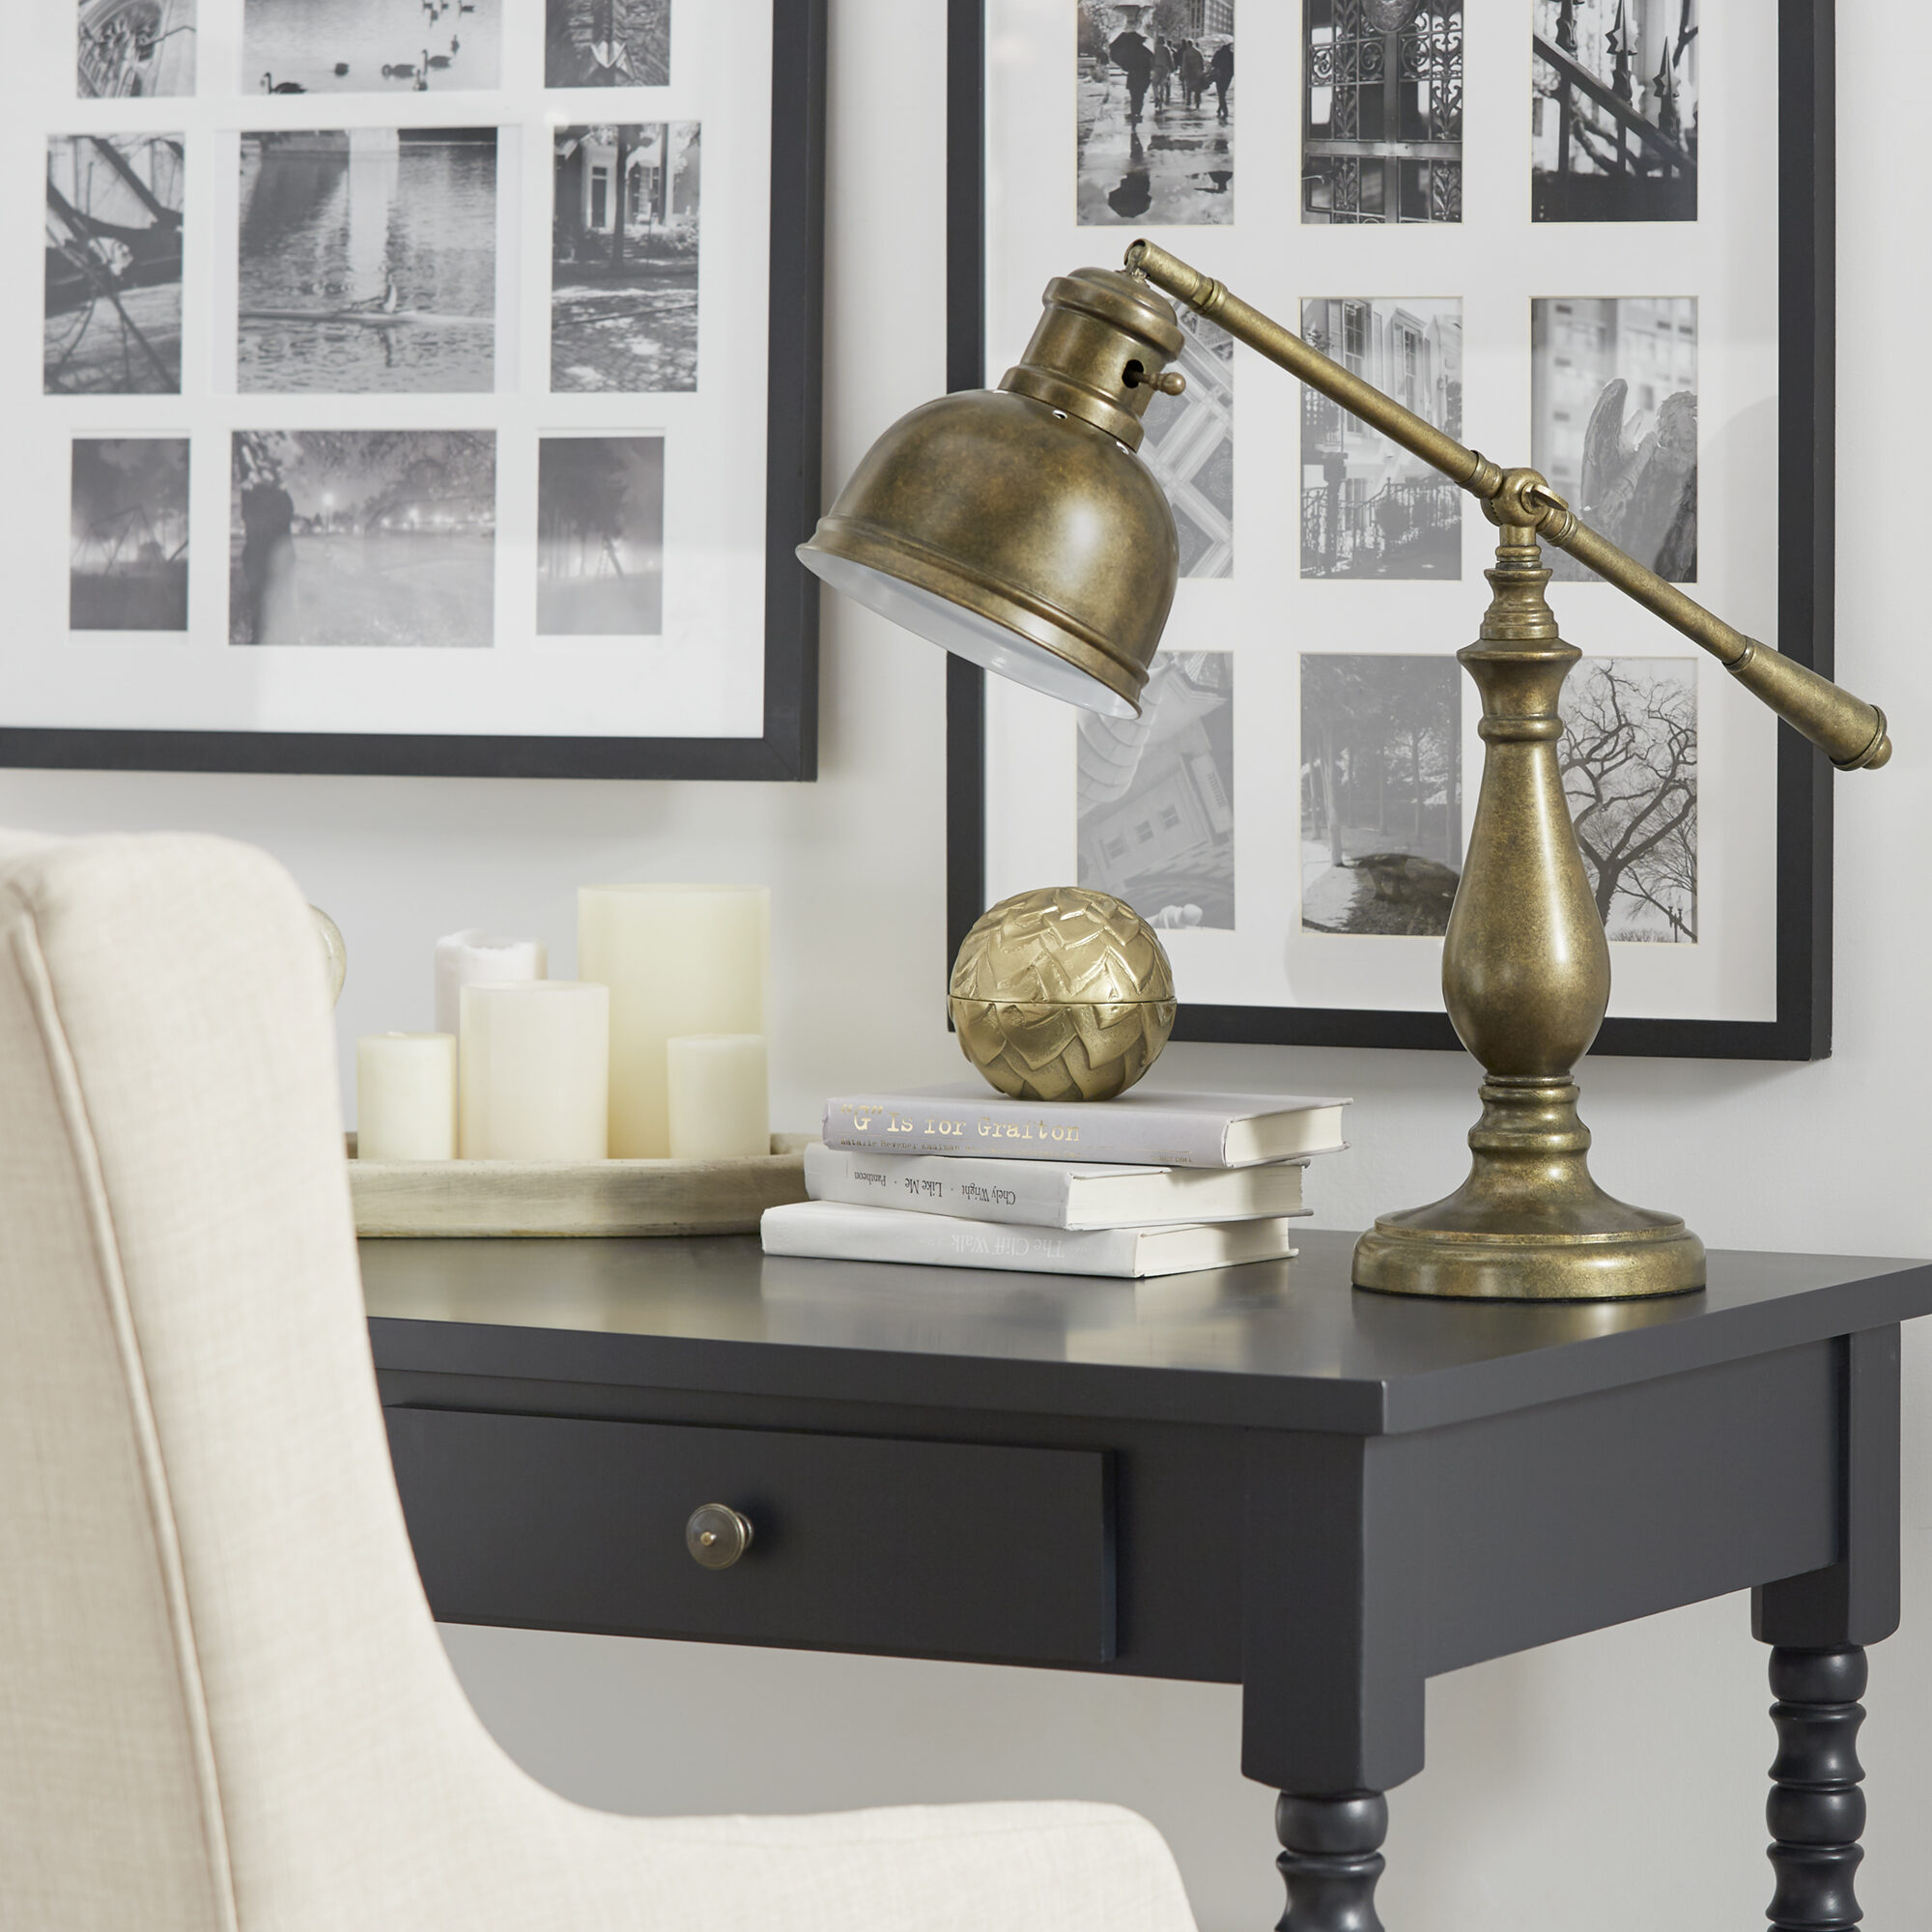 A bonus item on our list for small space furniture! Every desk needs a table top companion and our Maximus Metal Antiqued Brass 1-light Accent Desk Lamp by iNSPIRE Q Artisan makes the perfect one.